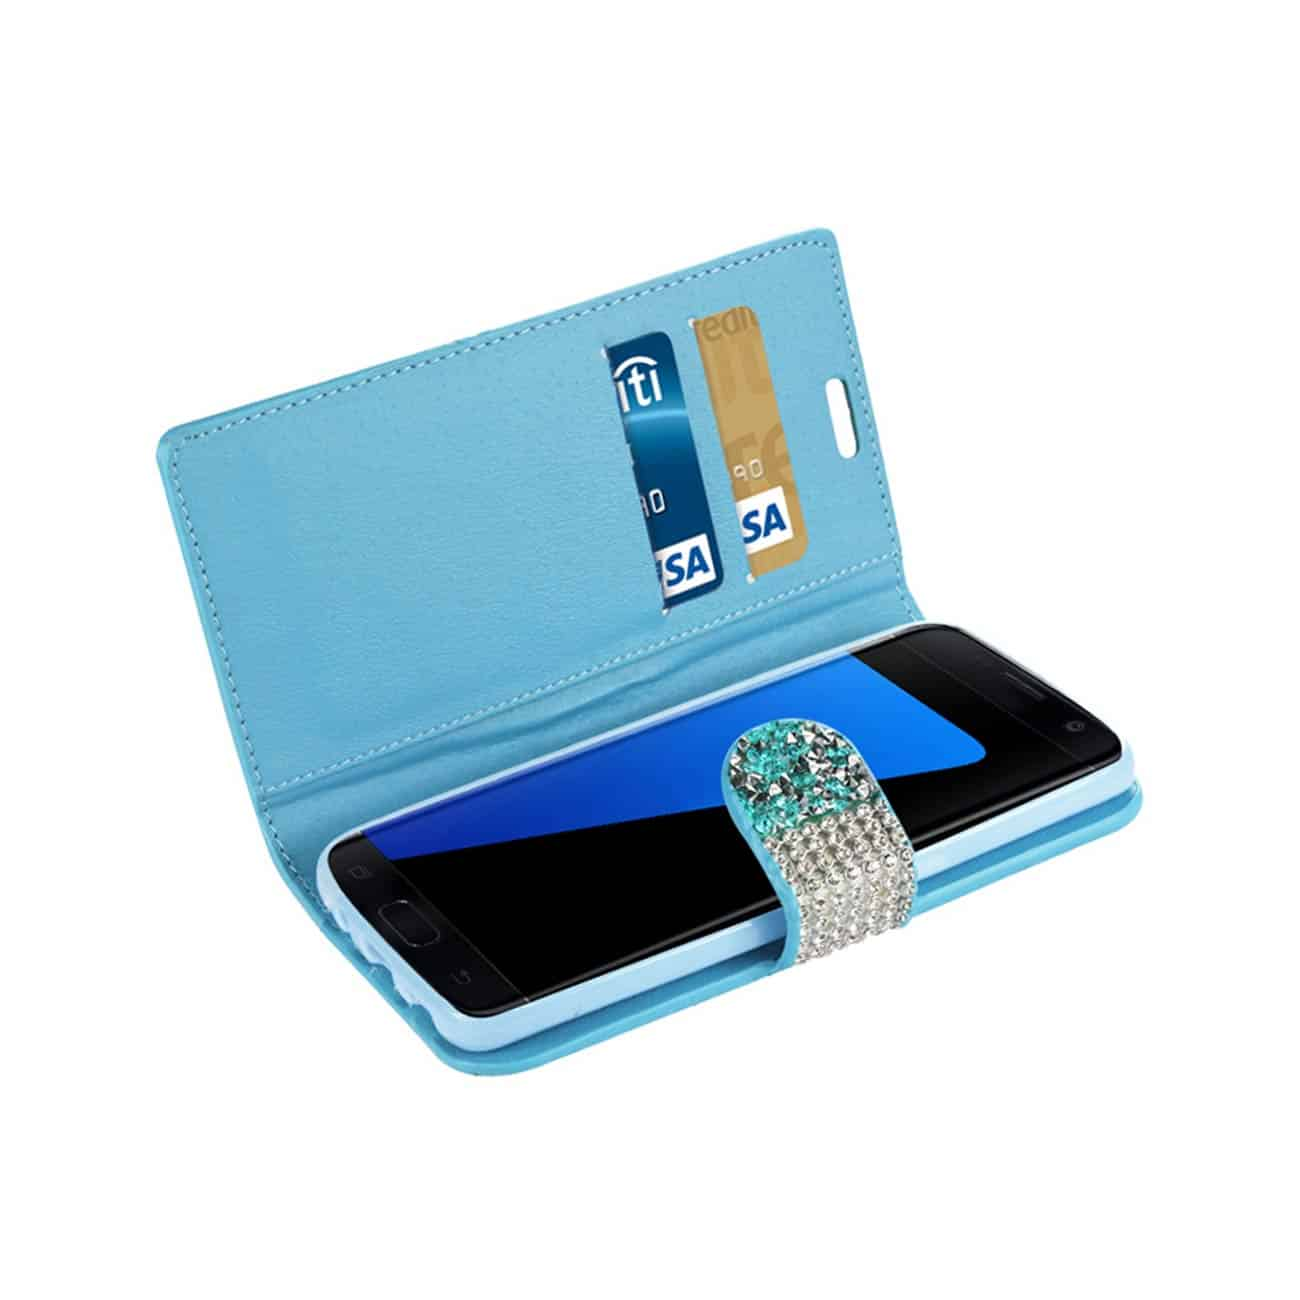 SAMSUNG GALAXY S7 EDGE JEWELRY RHINESTONE WALLET CASE IN BLUE